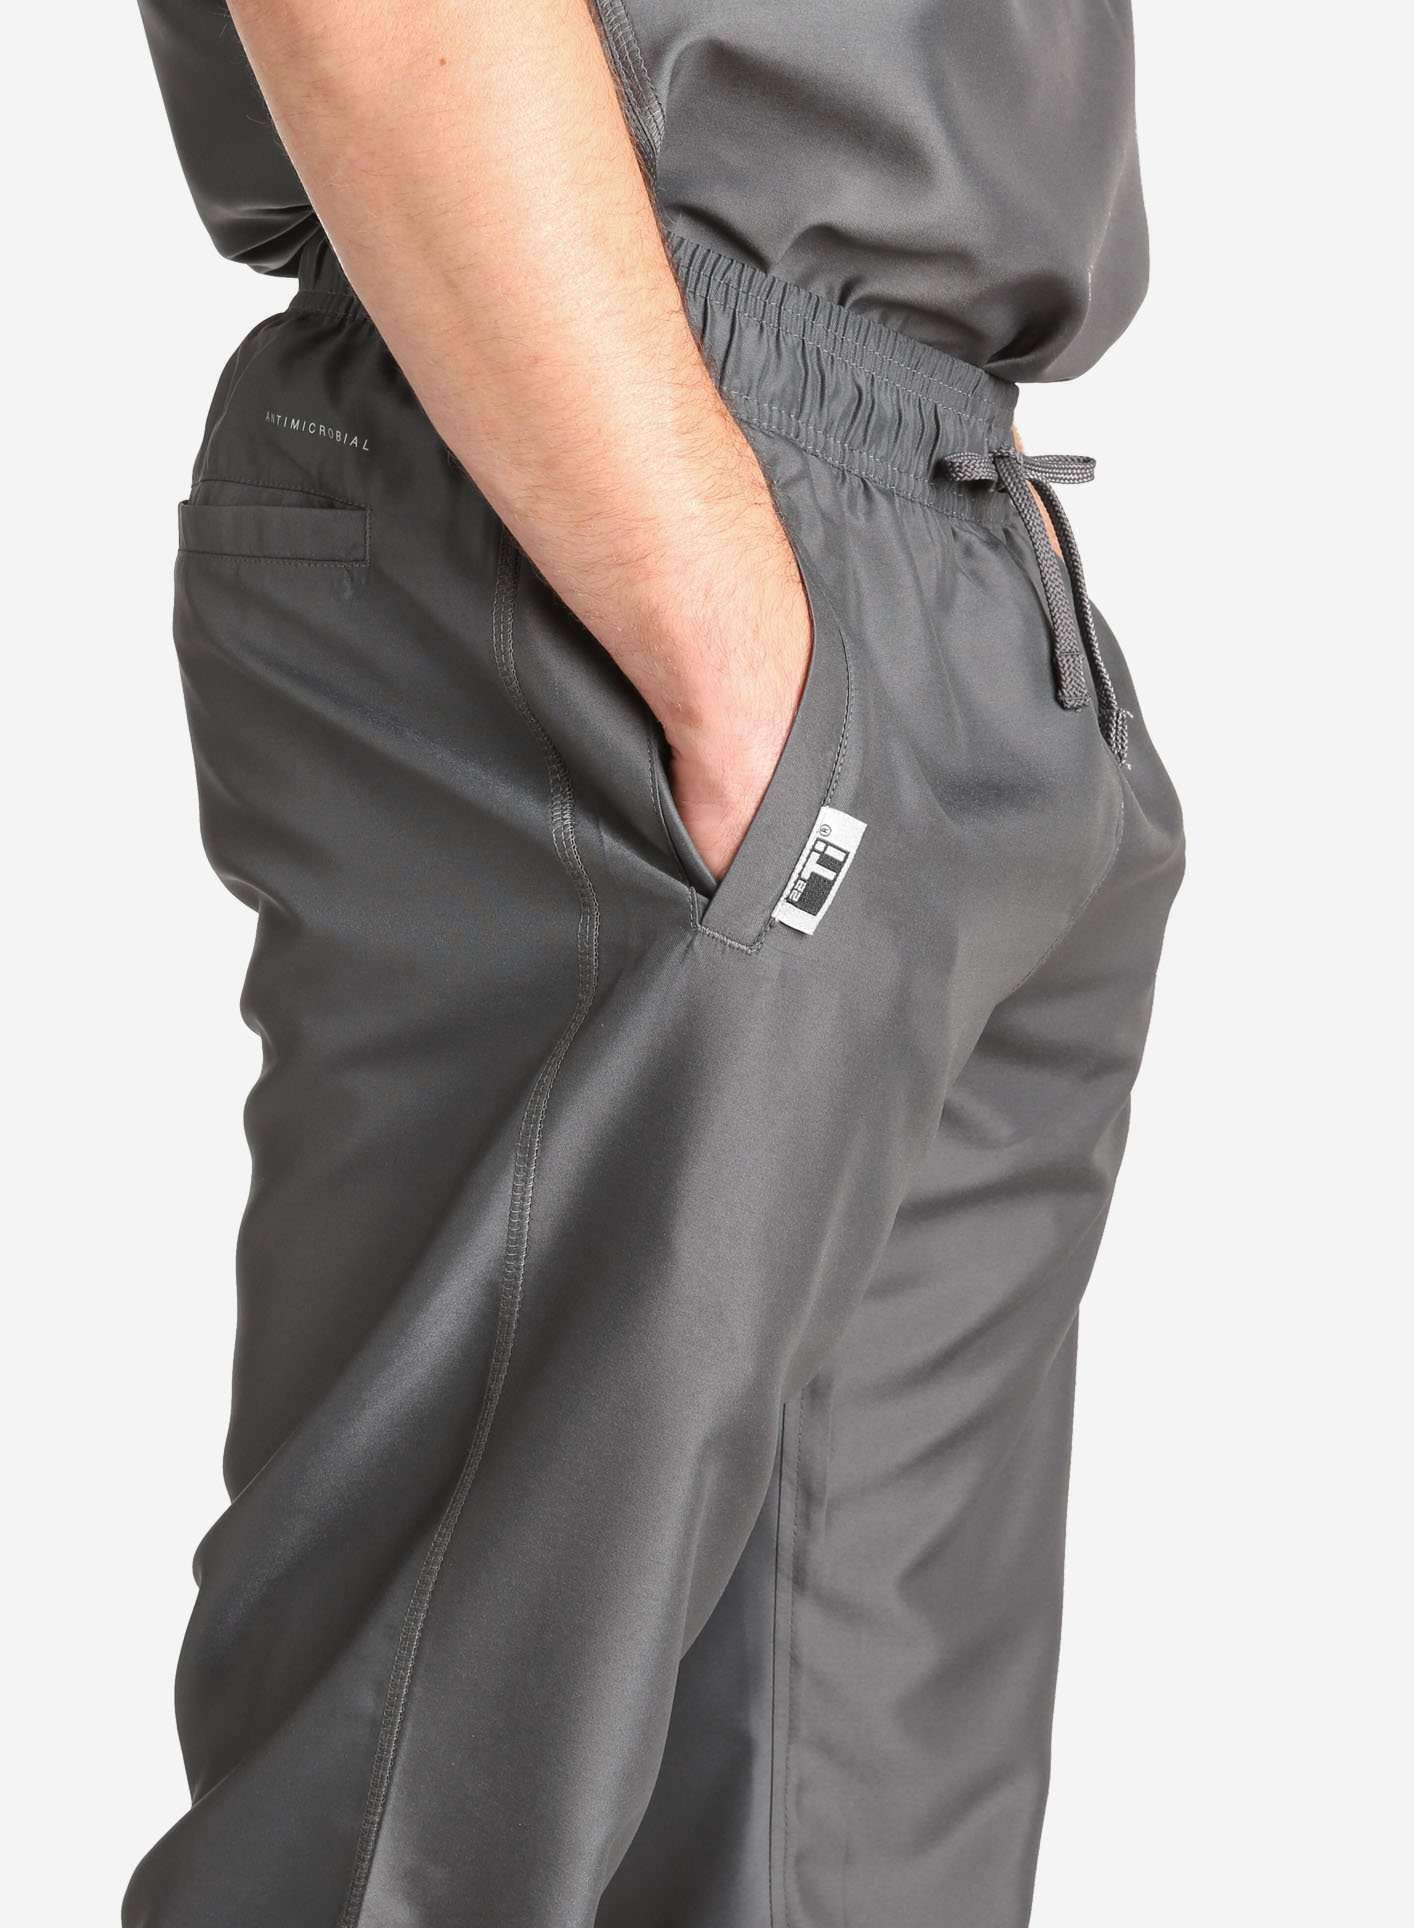 Men's Jogger Scrub Pants in Dark Grey Pocket Detail View